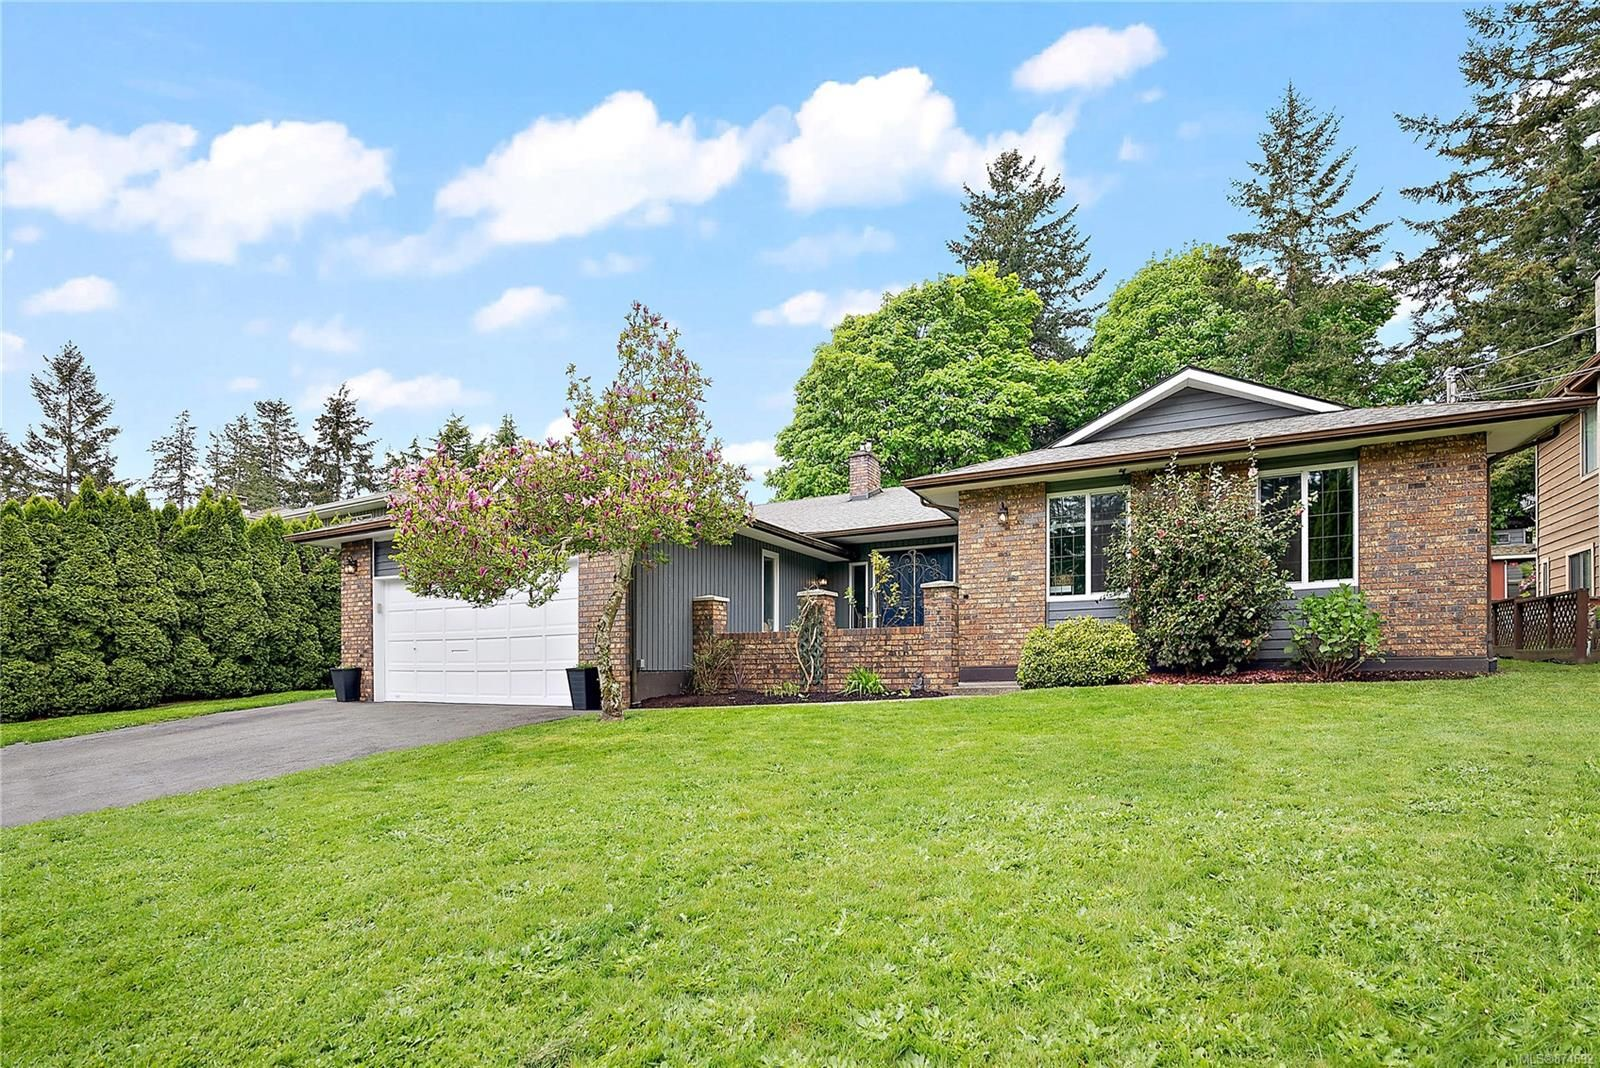 Main Photo: 7312 Veyaness Rd in Central Saanich: CS Saanichton House for sale : MLS®# 874692